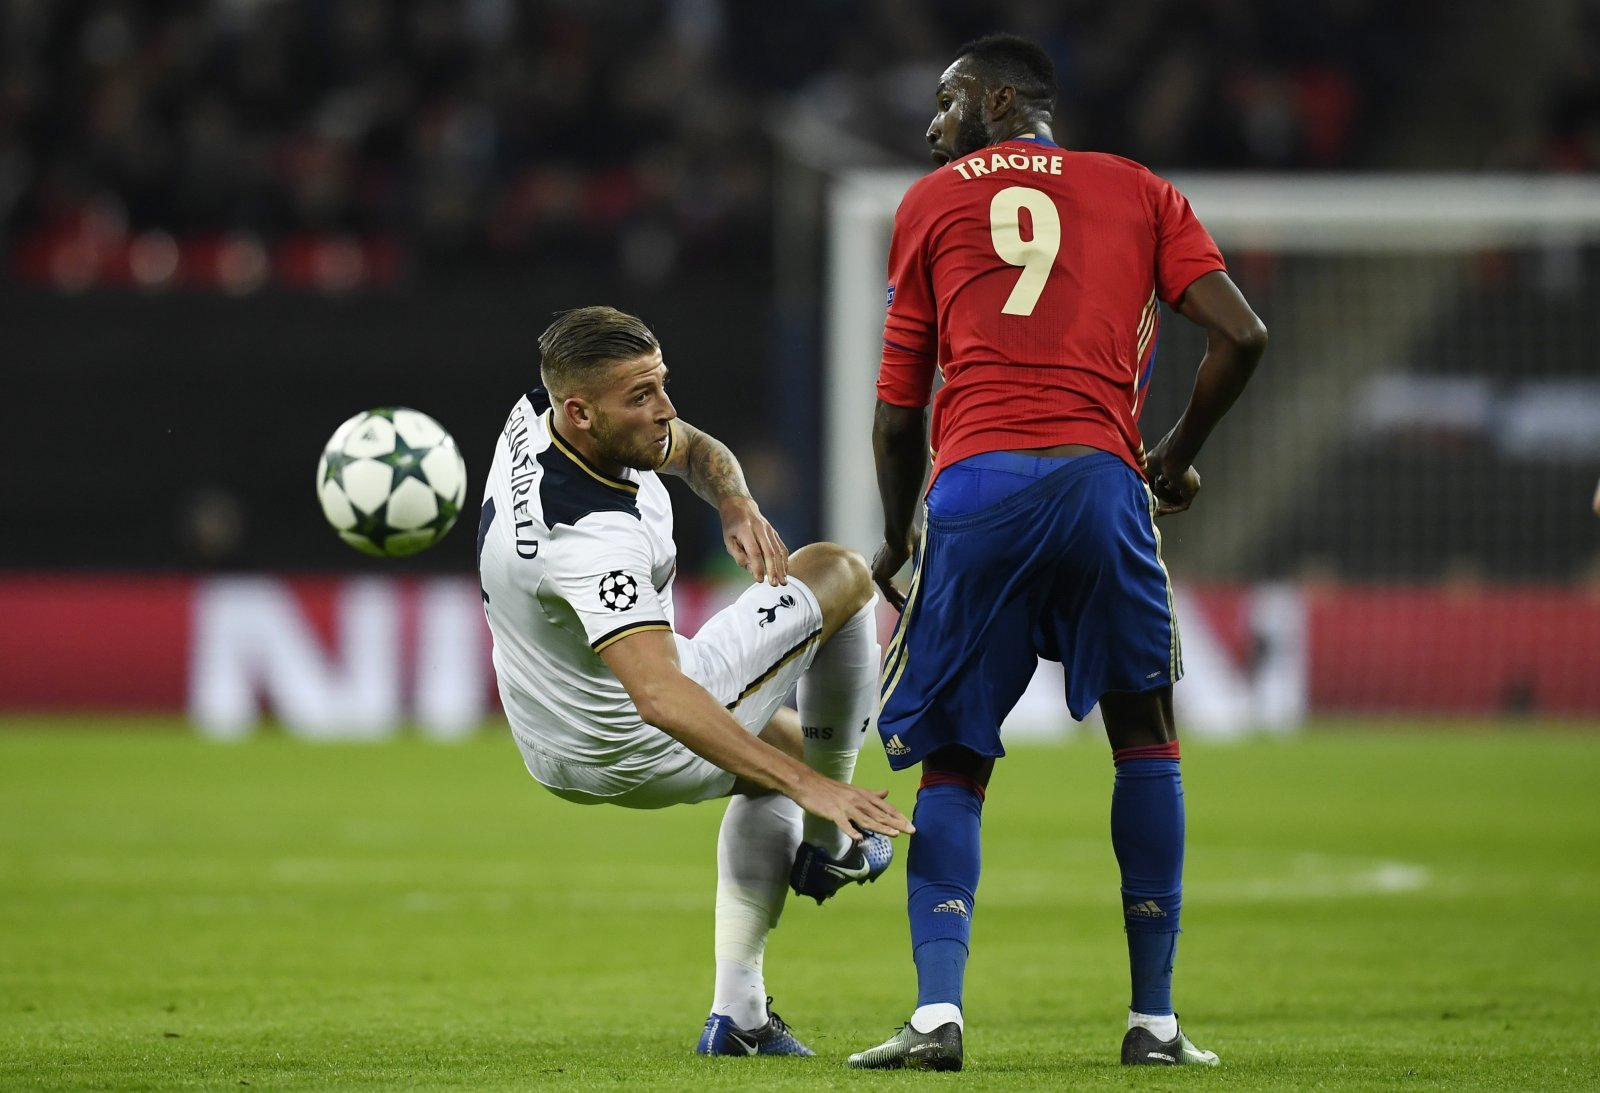 Free agent Lacina Traore could bring the best out of Jay Rodriguez